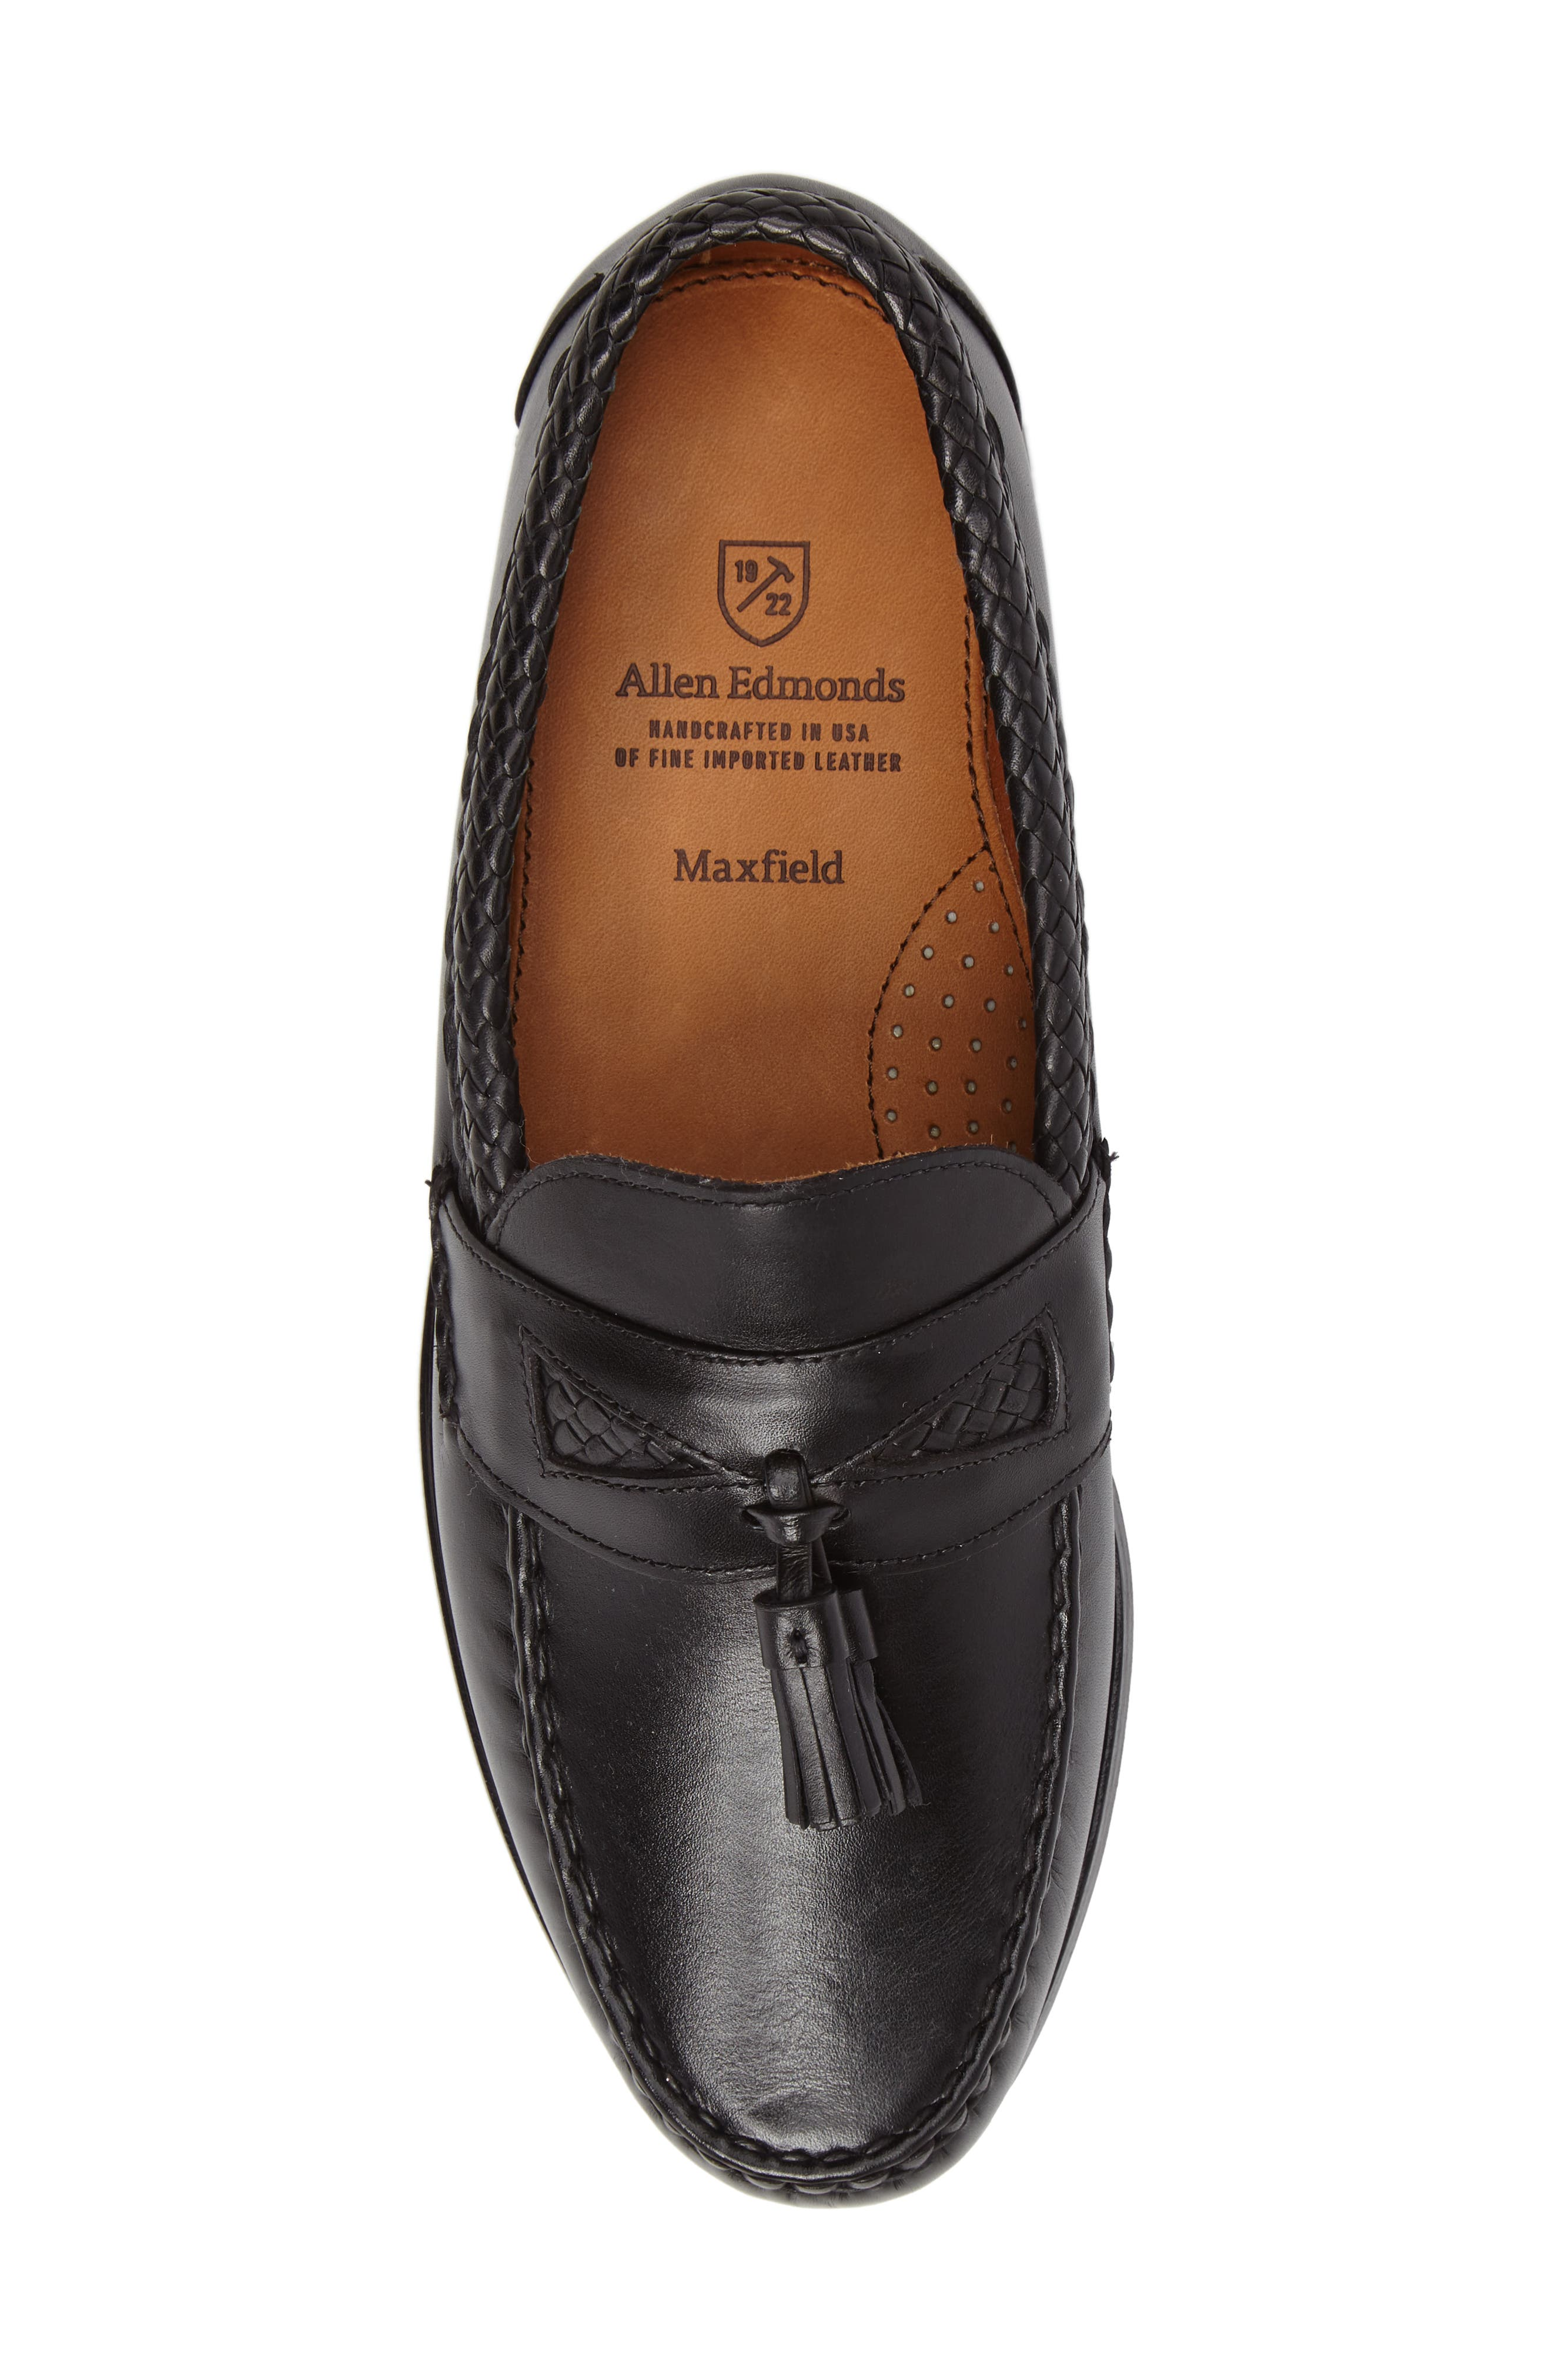 'Maxfield' Loafer,                             Alternate thumbnail 5, color,                             BLACK